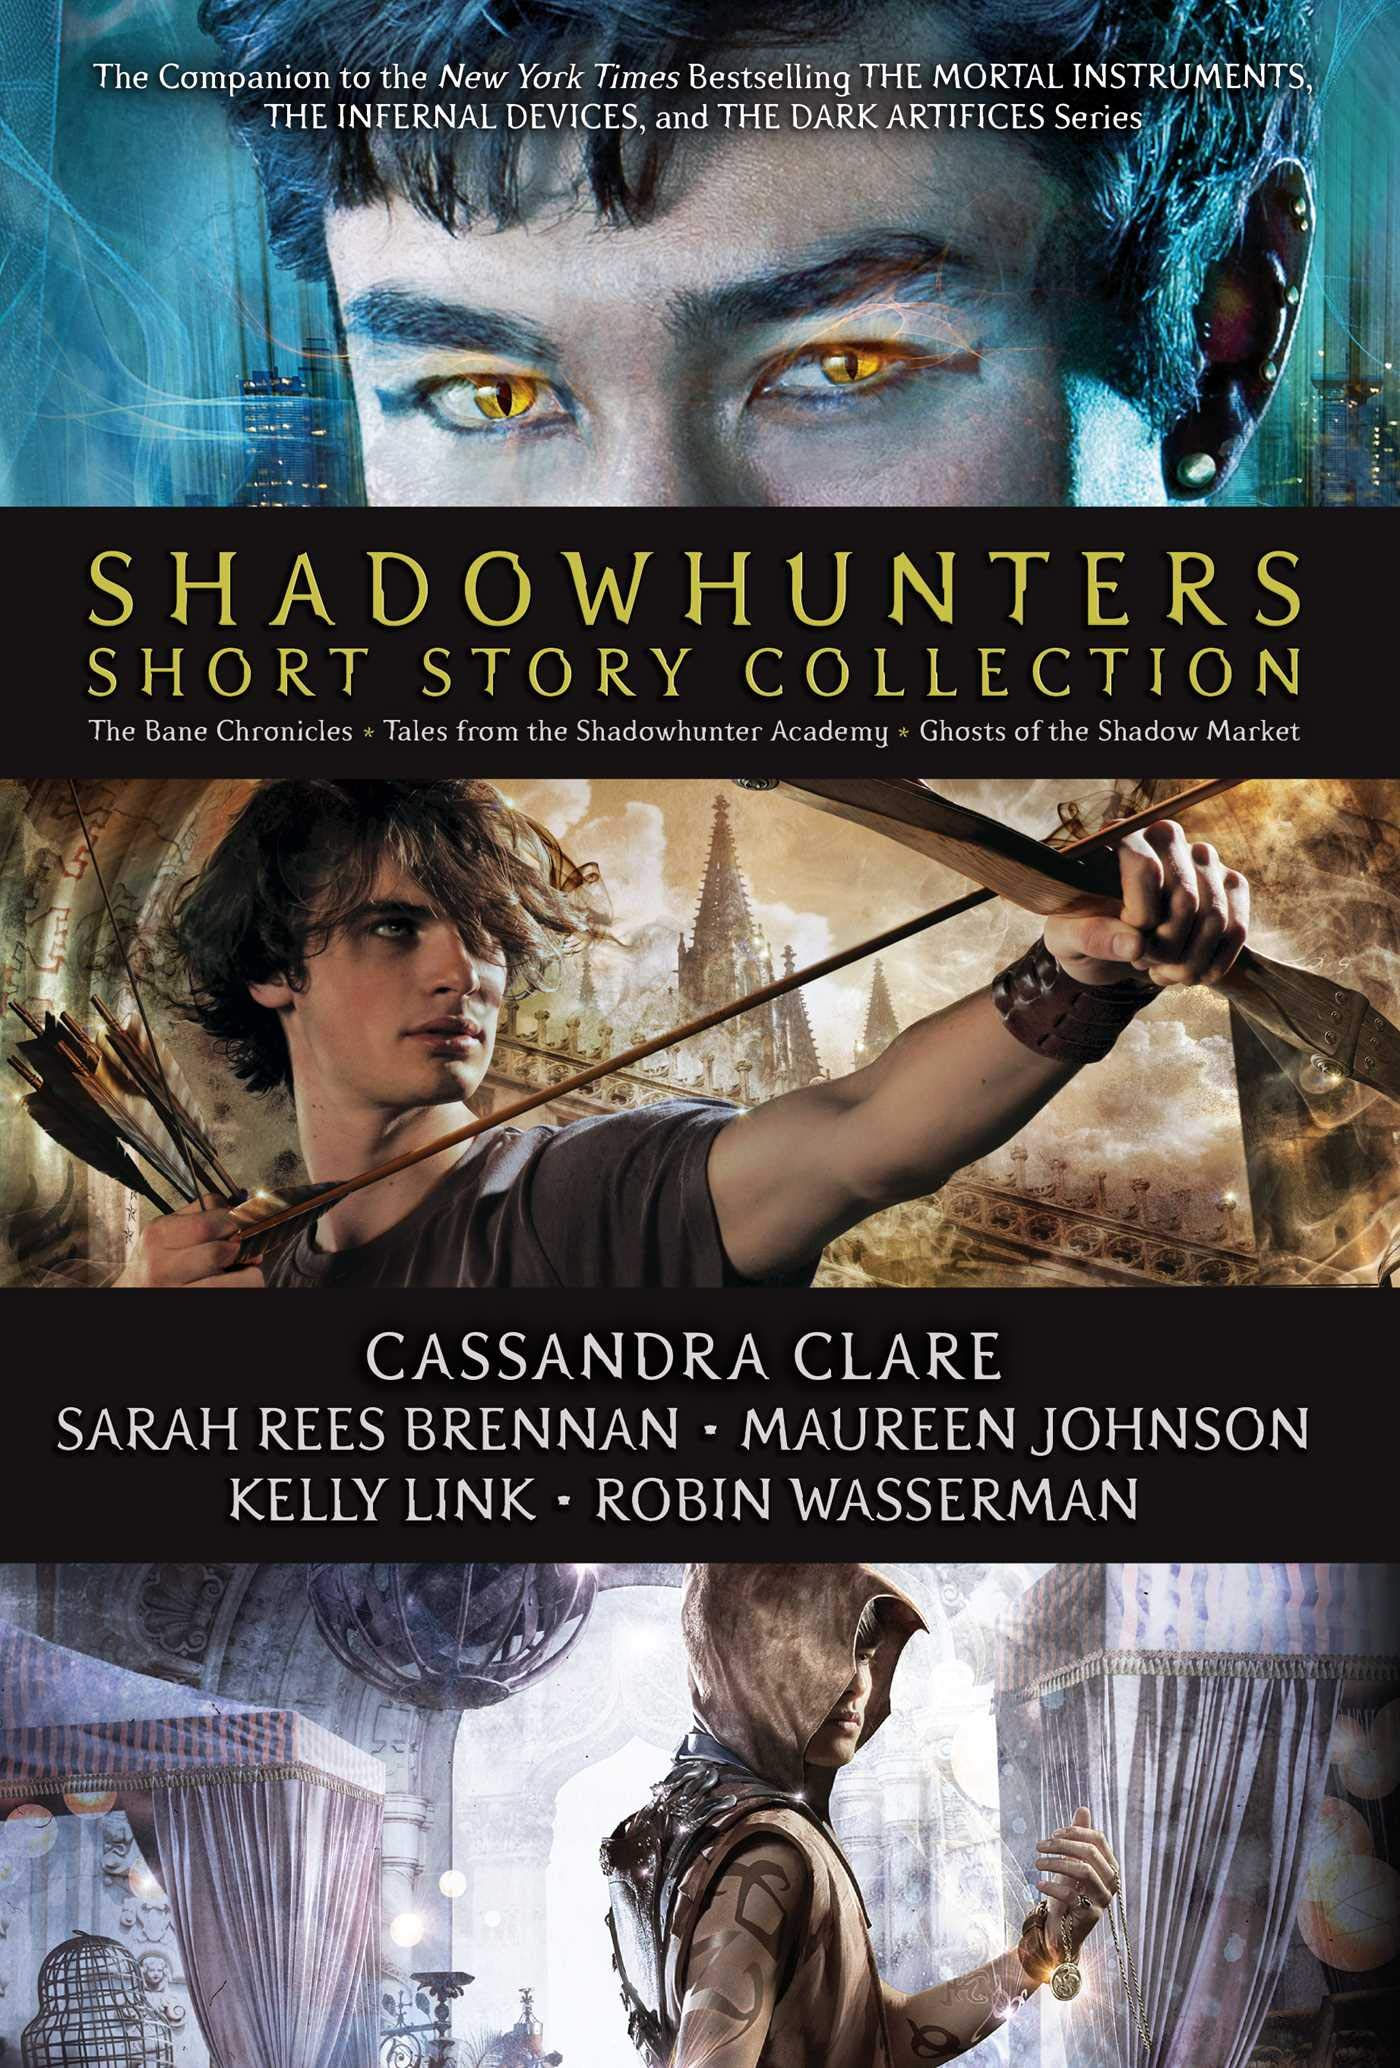 Shadowhunters Short Story Collection: The Bane Chronicles; Tales from the Shadowhunter Academy; Ghosts of the Shadow Market by Margaret K. McElderry Books